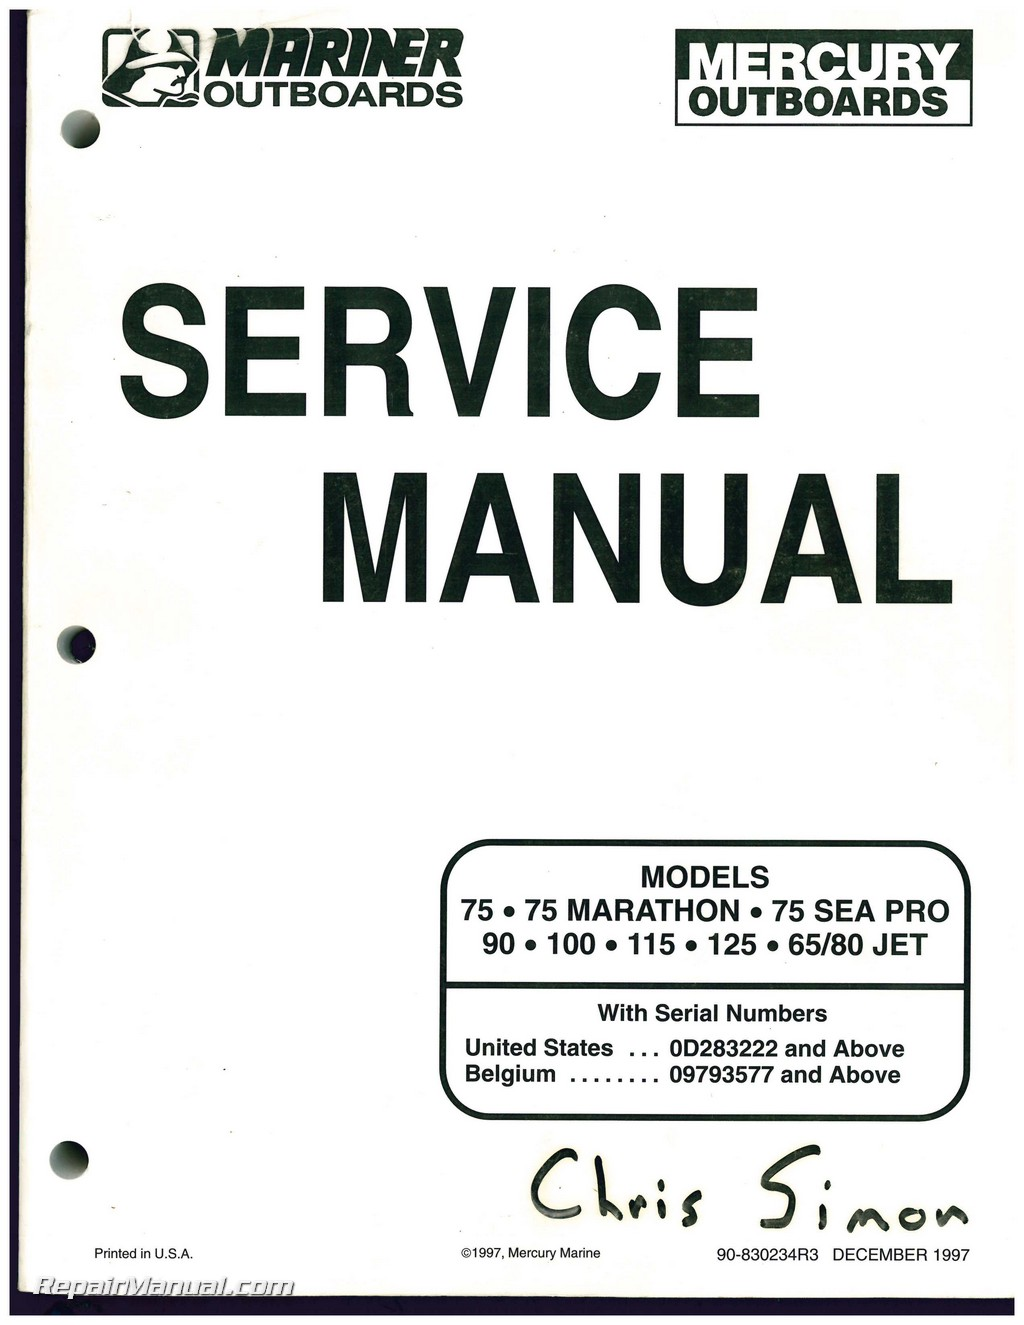 Used Mariner Mercury Outboard Engine 75 MARATHON, 75 SEA PRO 90, 100, 115,  125, 65/80 JET Service Manual